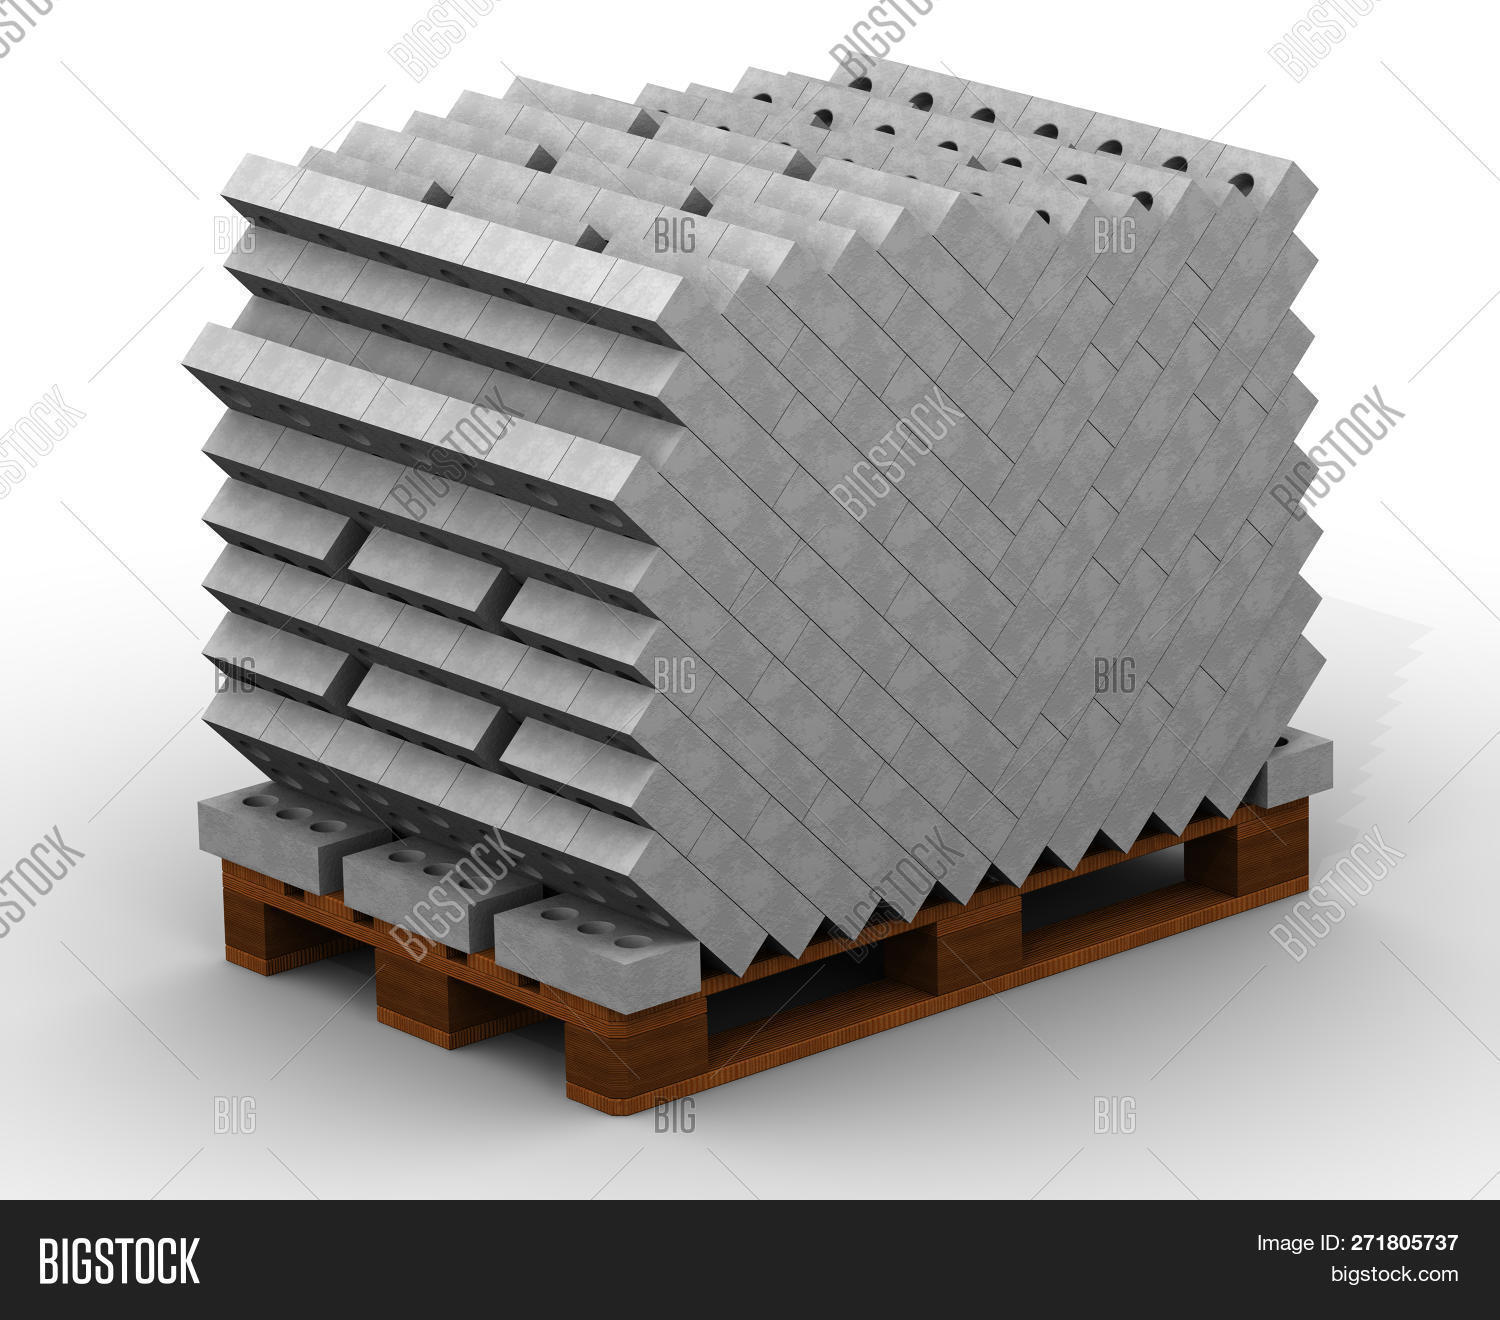 Pallet Full Silicate Image & Photo (Free Trial) | Bigstock